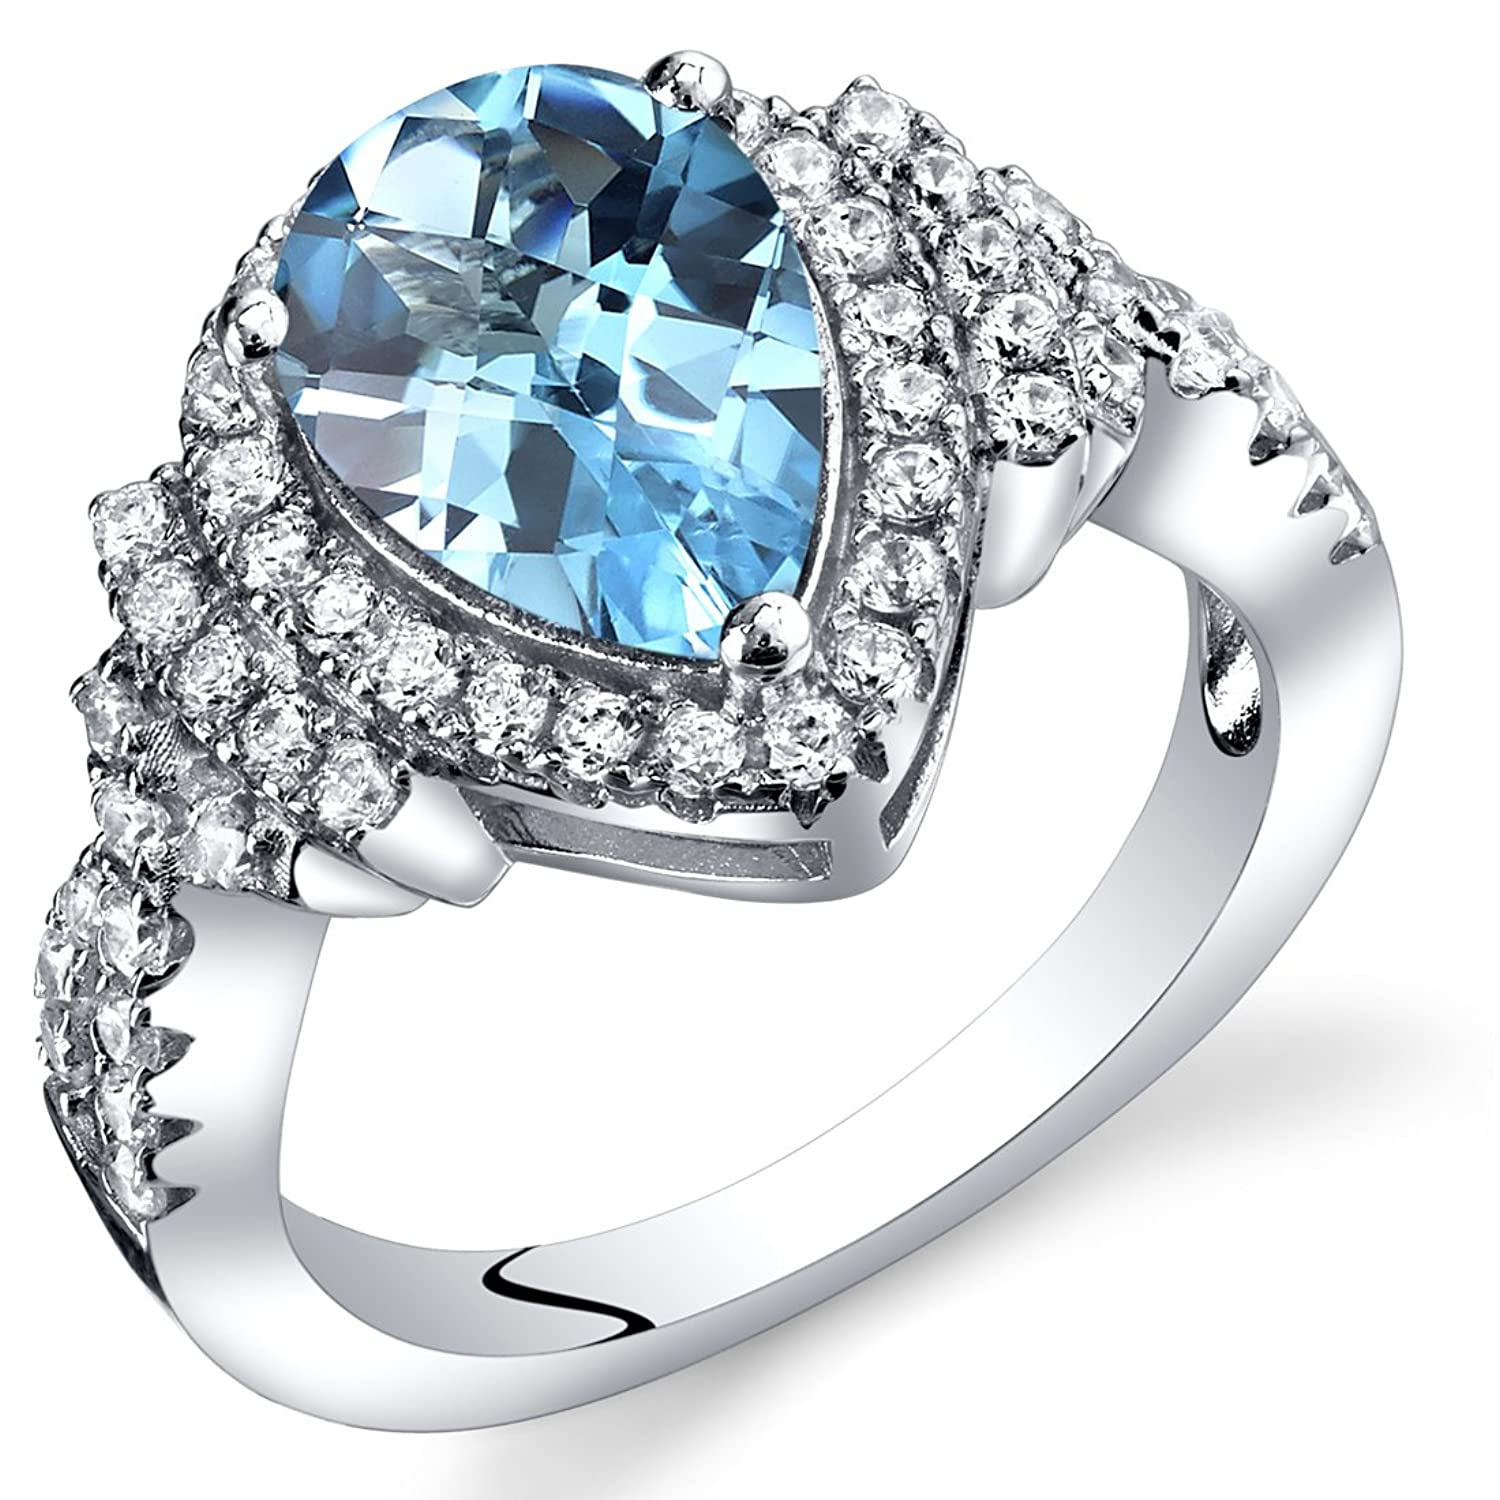 Swiss Blue Topaz Tear Drop Checkerboard Ring Steriling Silver 2.00 Carats Sizes 5 to 9